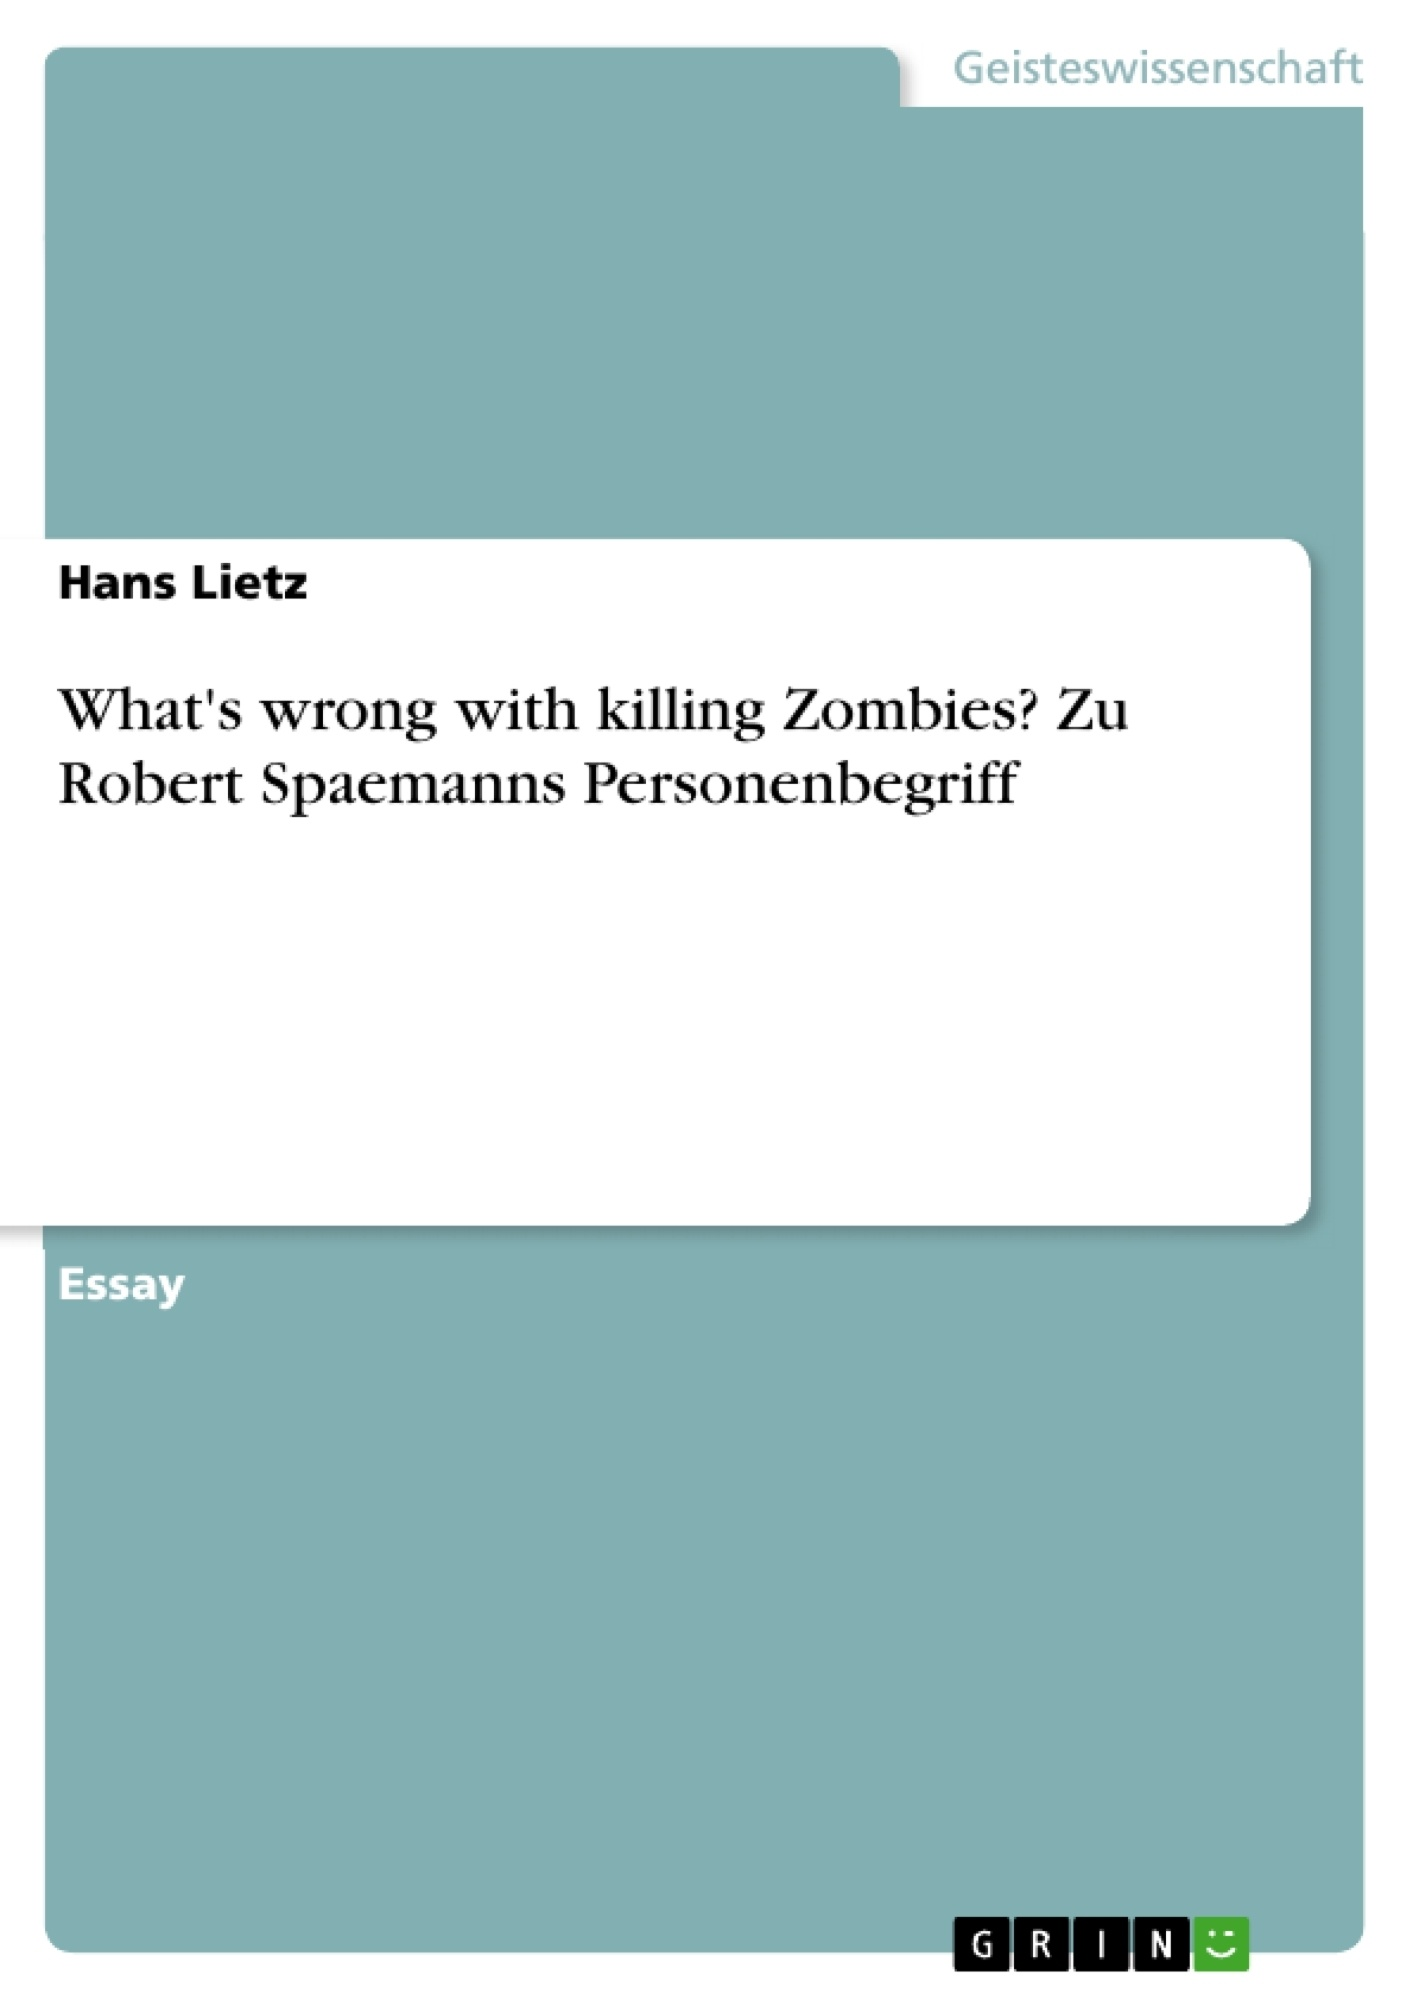 Titel: What's wrong with killing Zombies? Zu Robert Spaemanns Personenbegriff